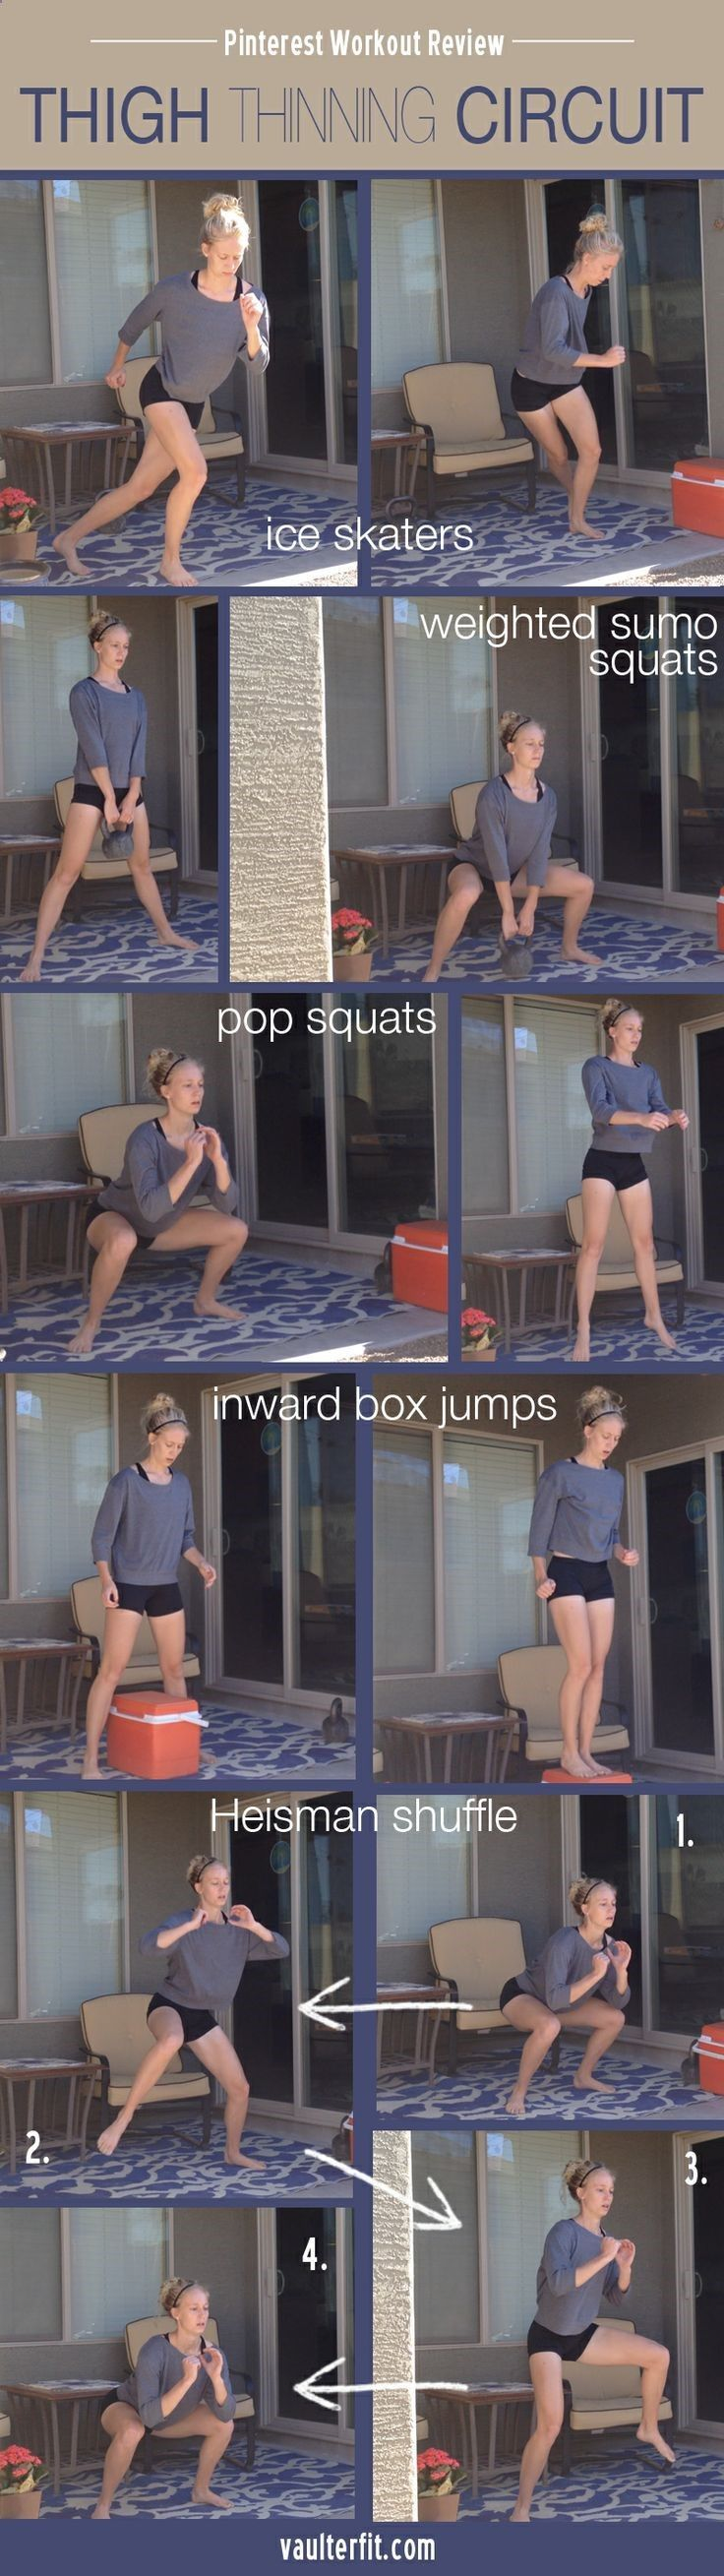 Thigh workout tips, with some great visuals to follow along with. #hotmamafit #lowerbodystrength